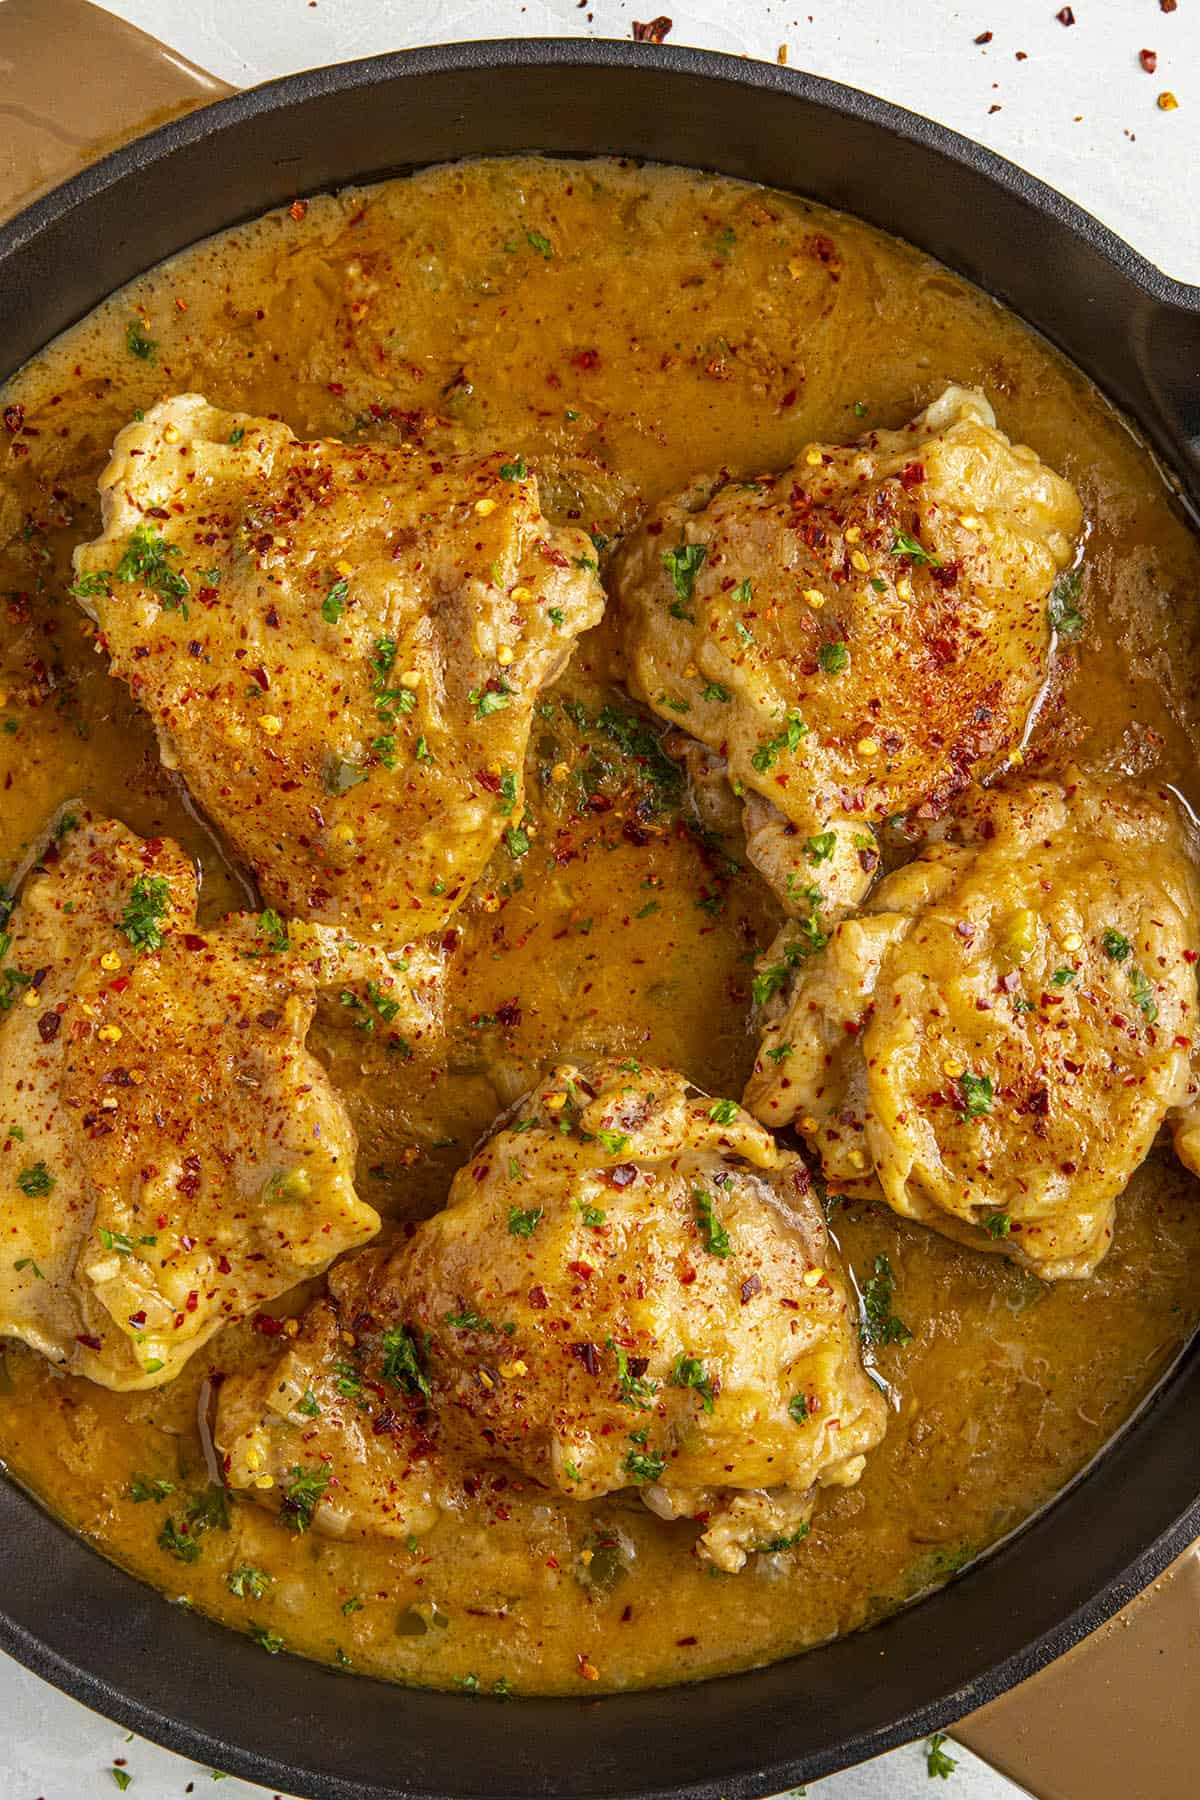 Chicken Fricassee in a pan ready to serve